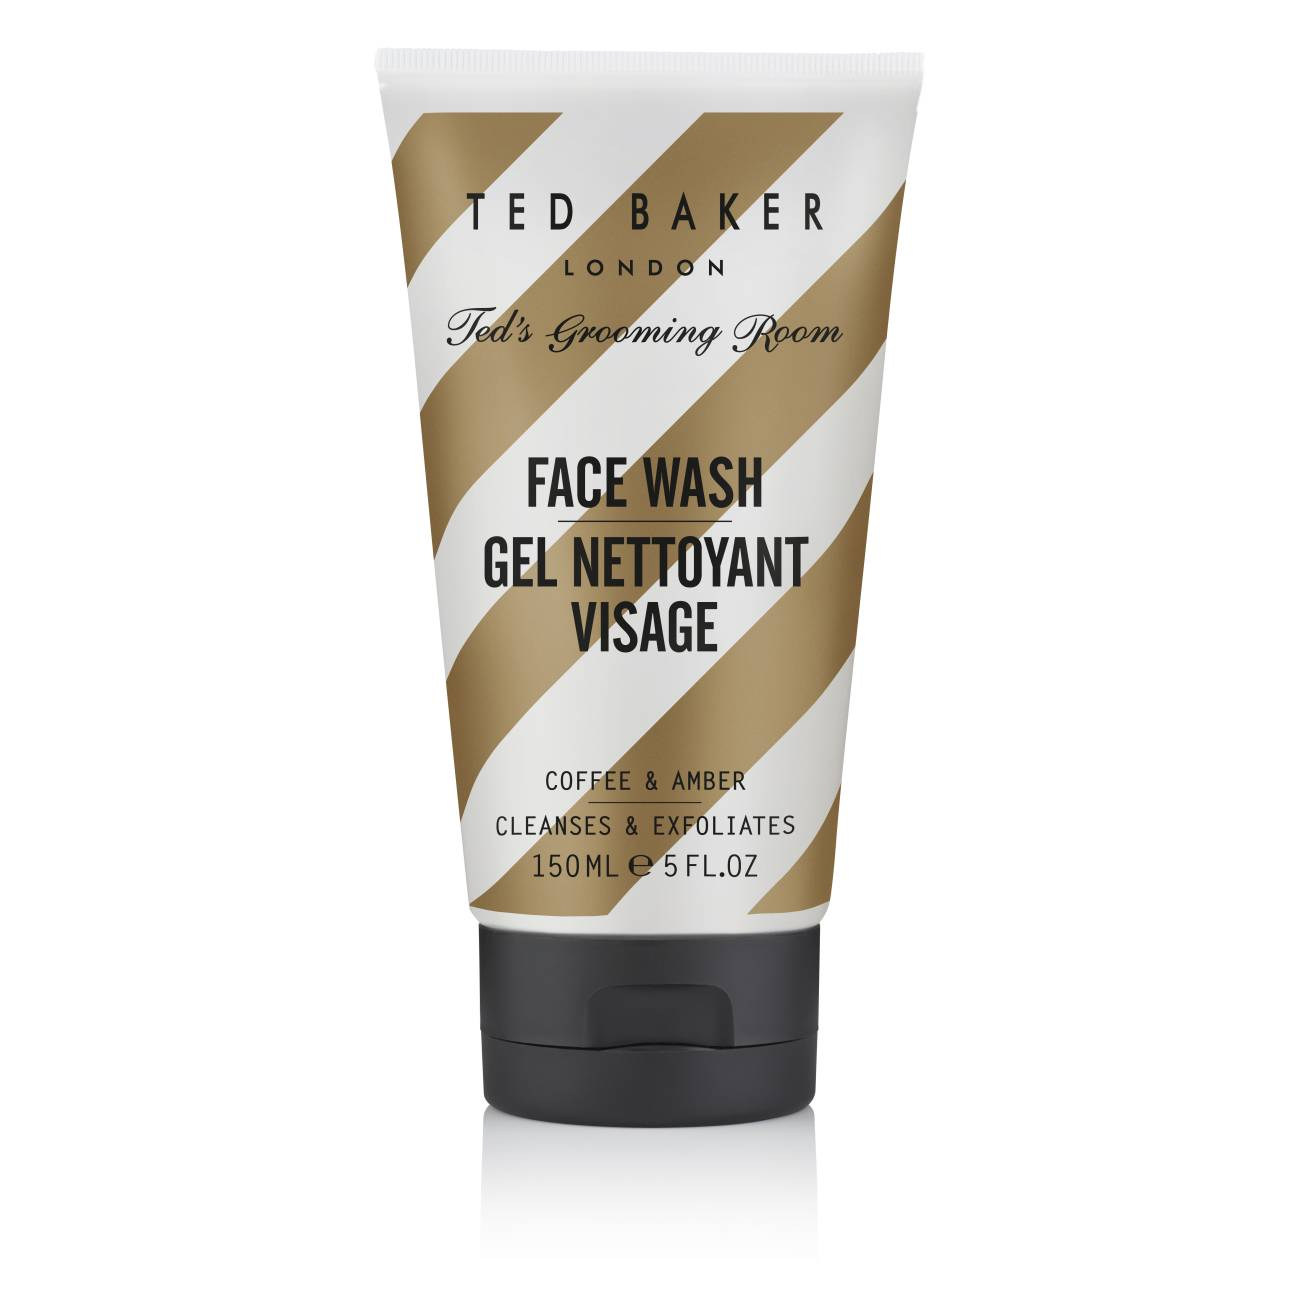 Ted Baker Face Wash 150ml / 5 fl oz